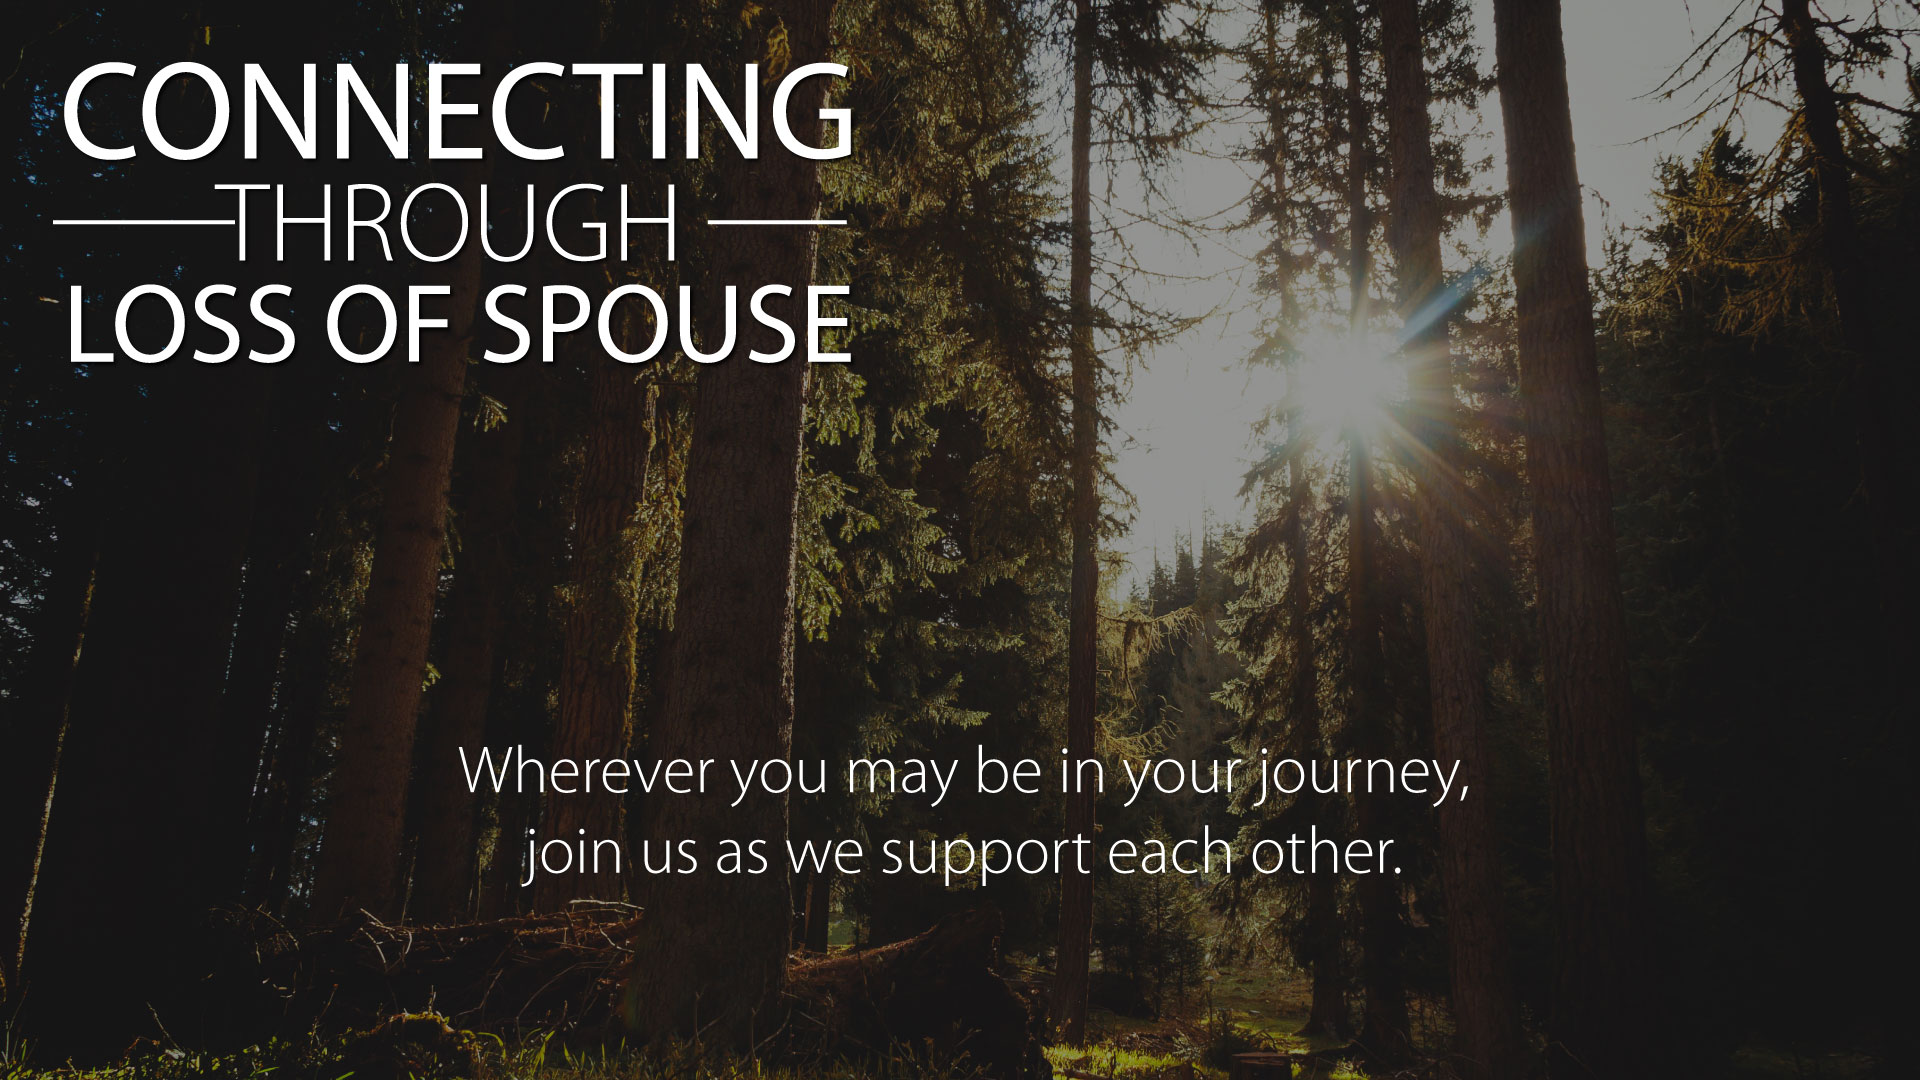 CONNECTING THROUGH LOSS OF SPOUSE - Connect, listen, encourage, and grow in community with others who have lost a spouse. This group meets casually once a month at various locations.Email Mandy at mschneider@willowcreek.org for more information.Sunday | Sept. 22 | 10:15am - 11am | Atrium Reserved TableFor those that have lost a spouse, grab a post-service coffee and treat, and join us at a specially reserved table in the atrium.